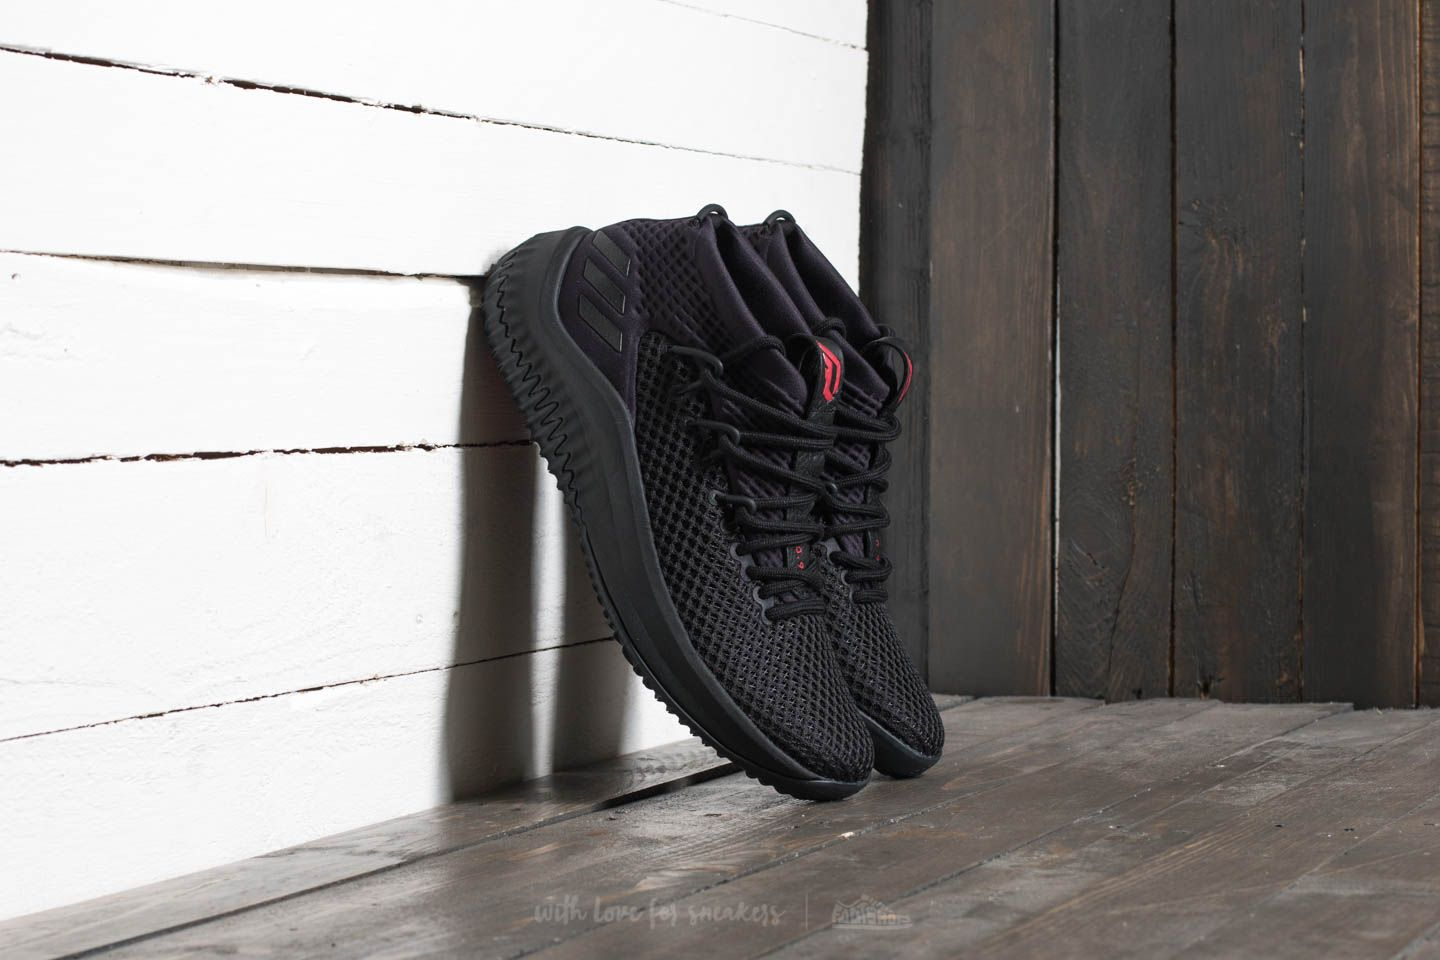 separation shoes f725b deeb0 adidas Dame 4. Core Black Core Black Scarlet